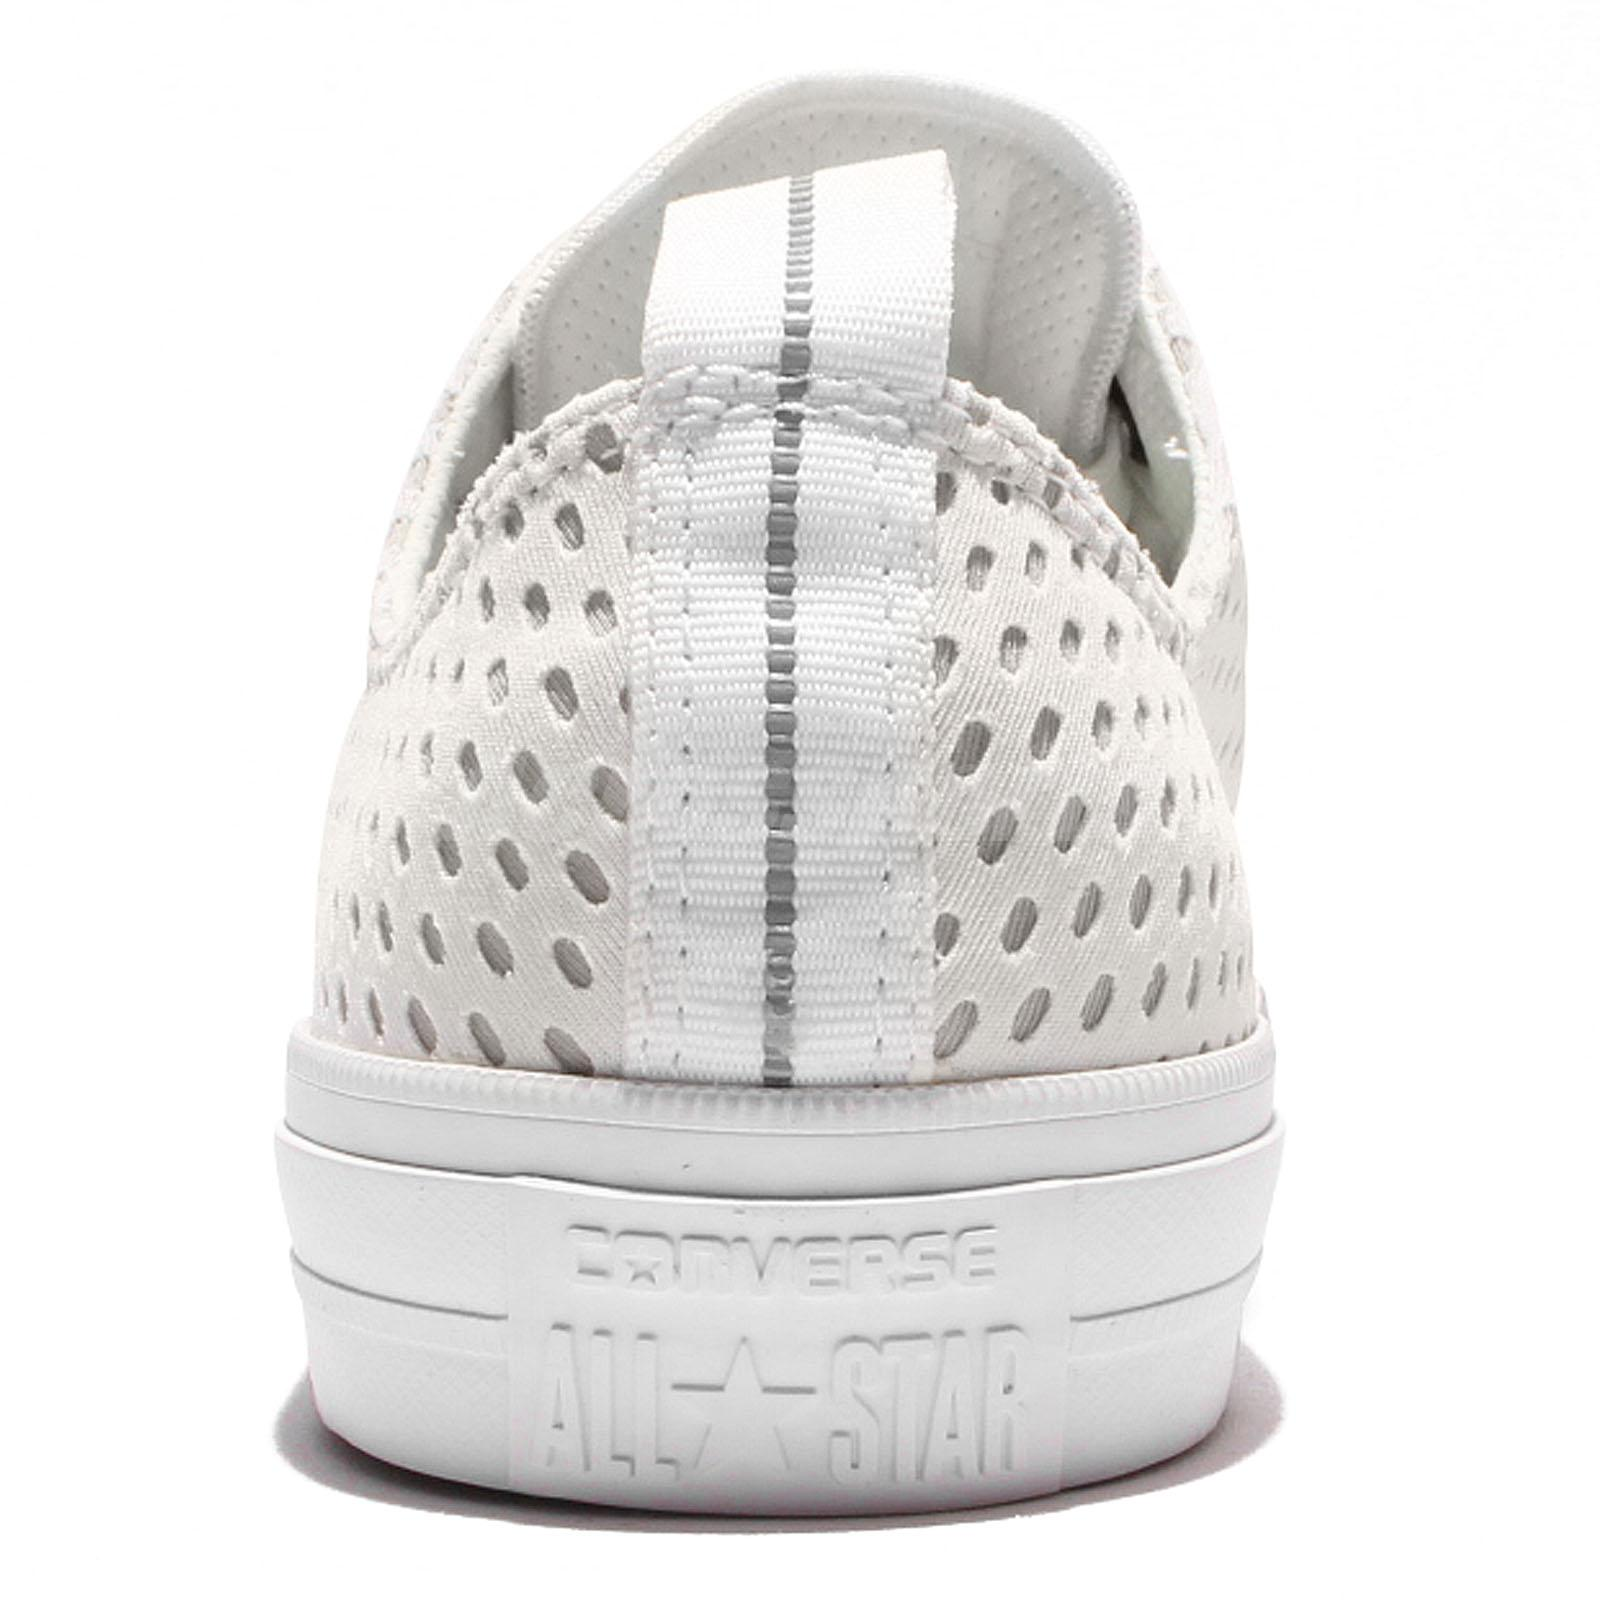 Converse chuck taylor all star ii 2 white men casual shoes size chart nvjuhfo Gallery